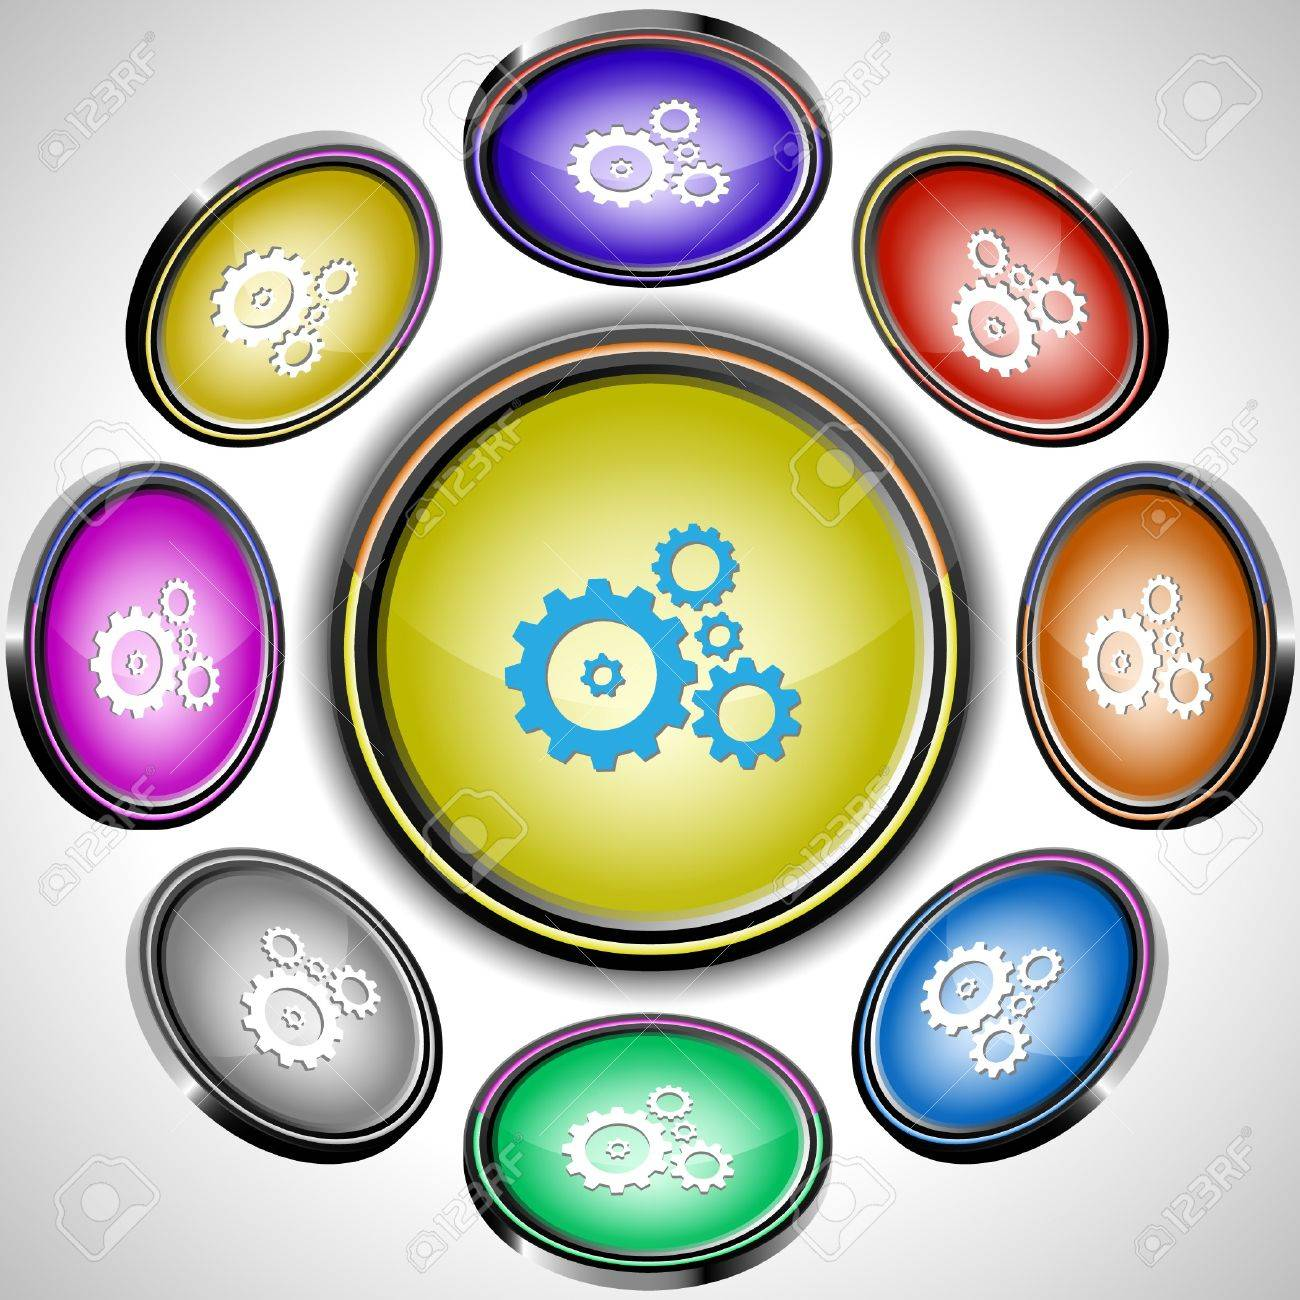 Gears. internet buttons. 8 different projections. Stock Vector - 7262037